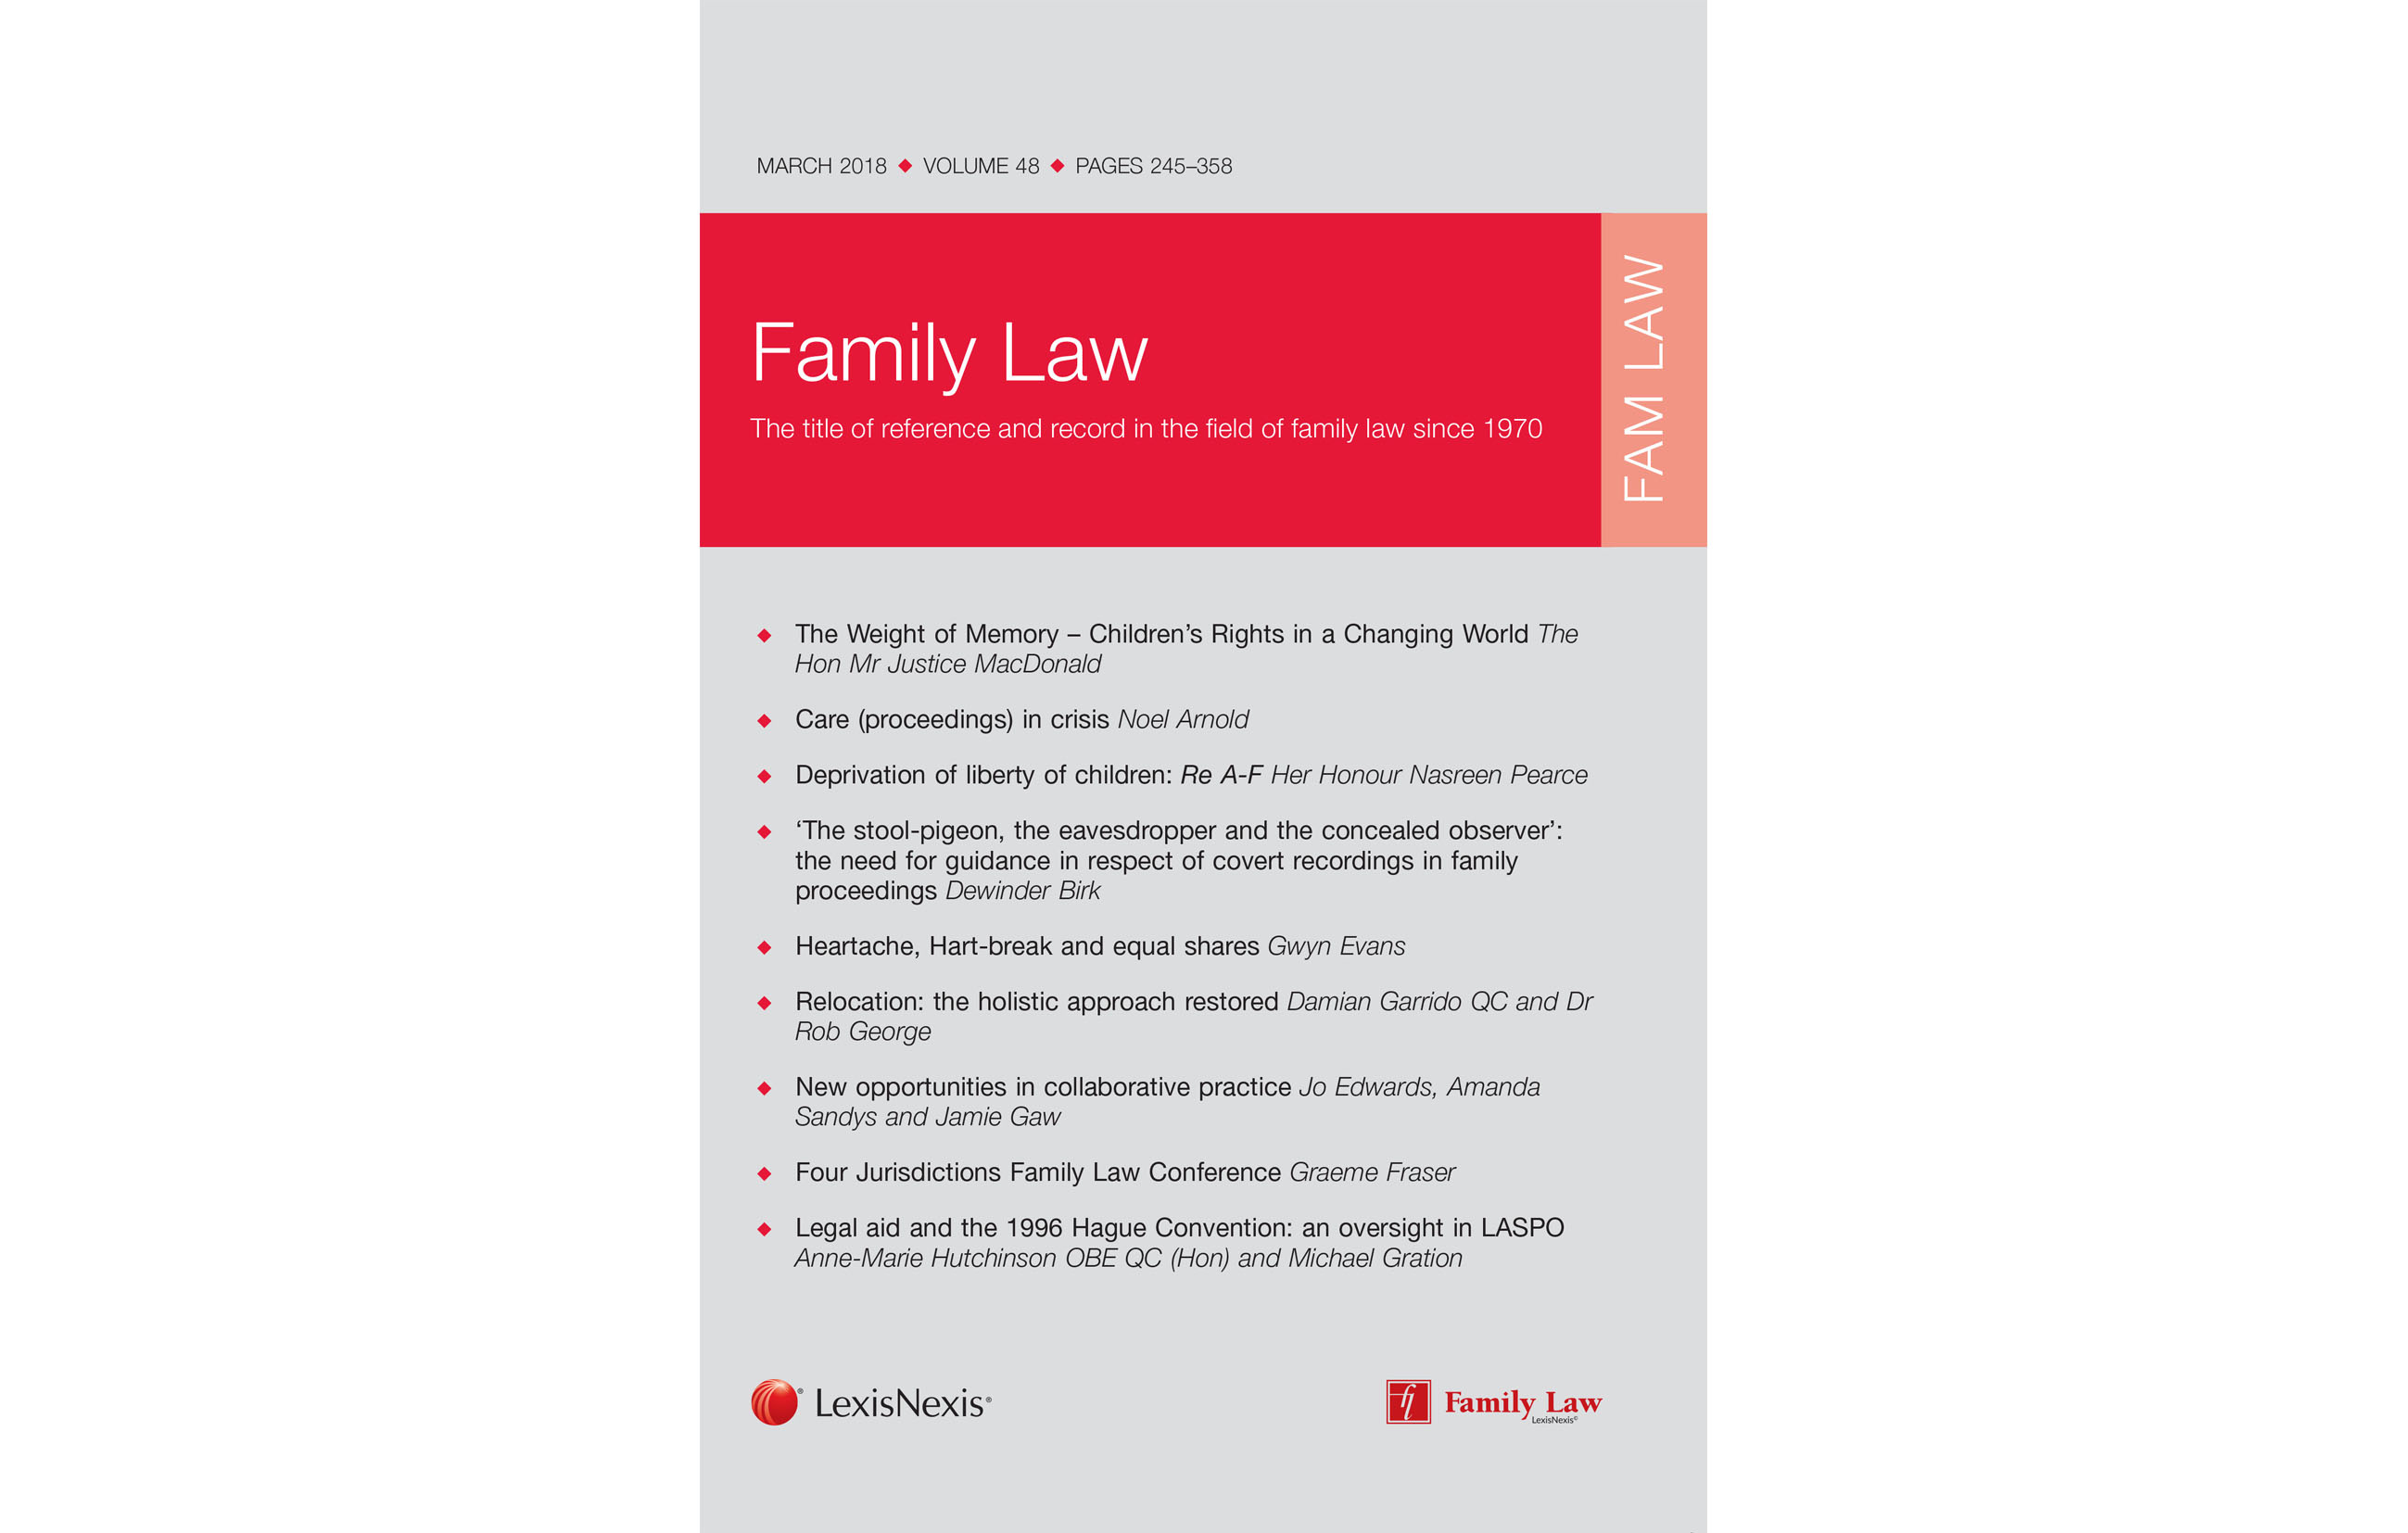 Family_Law_March_2018